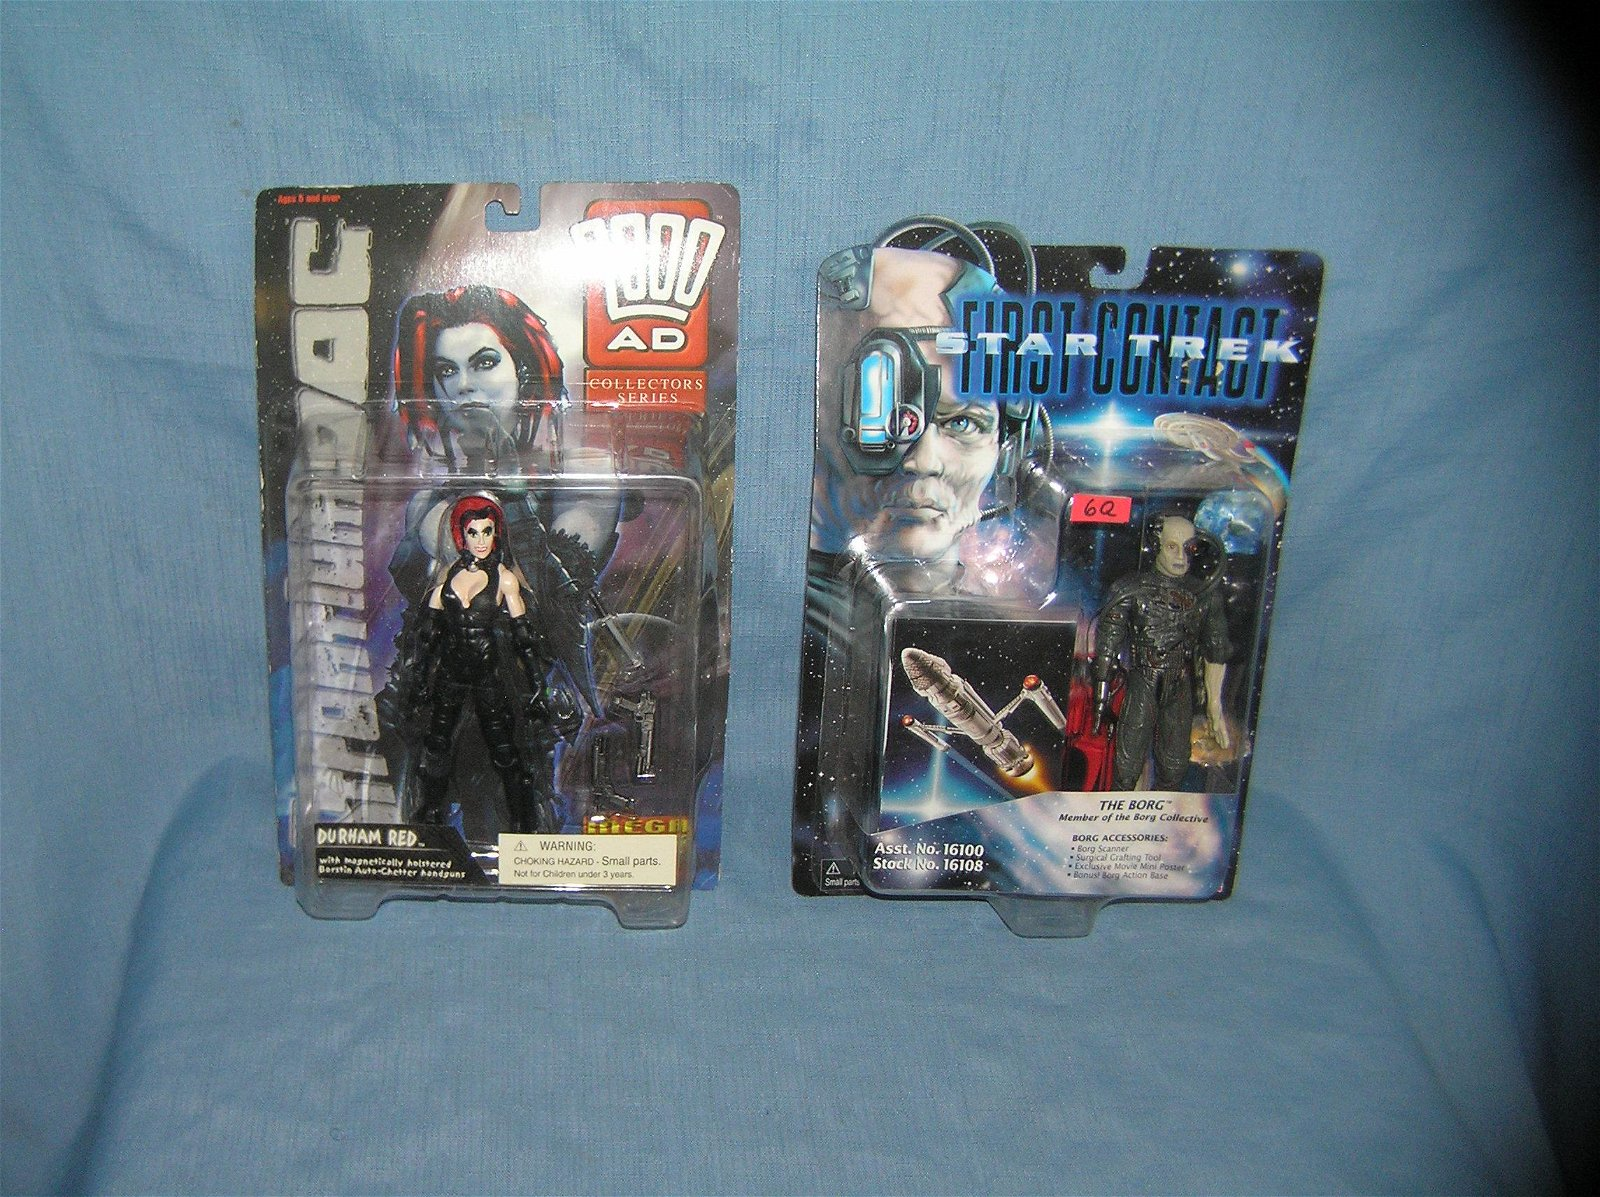 Vintage action figures, The Borg and Durham Red